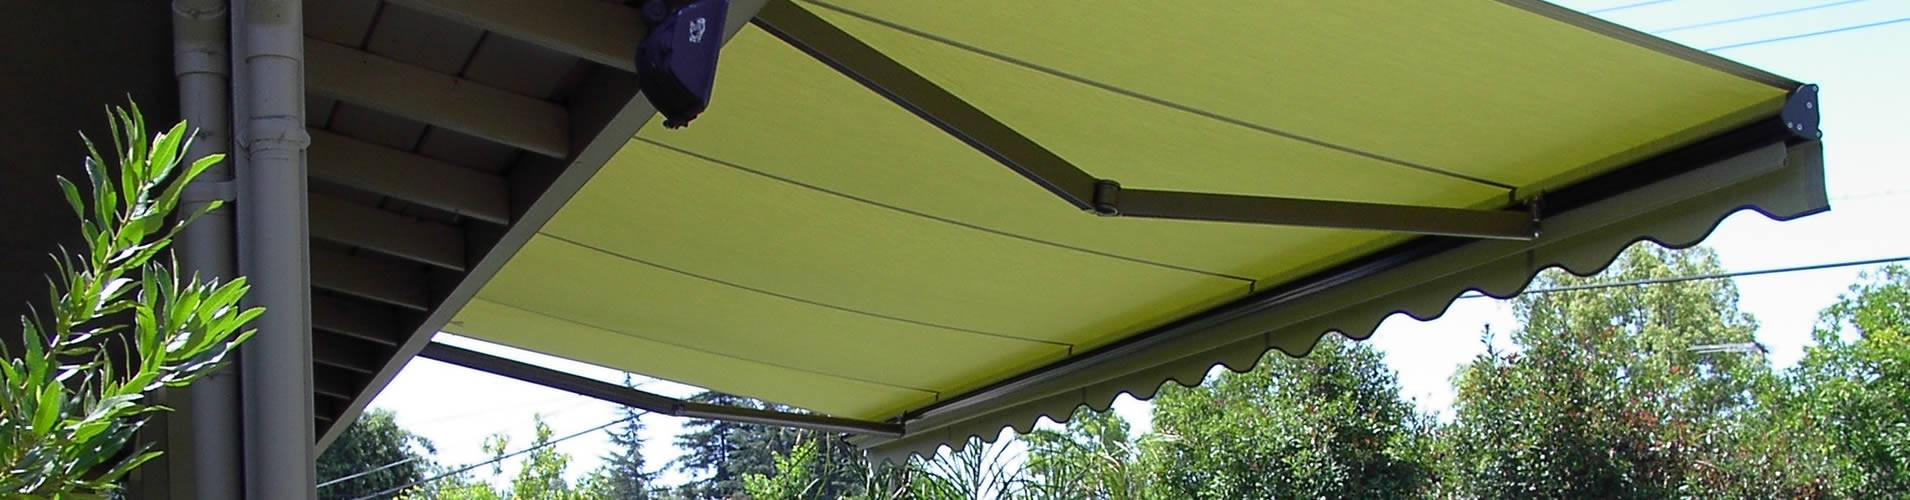 Palm Beach's Premier Awning Manufacturer